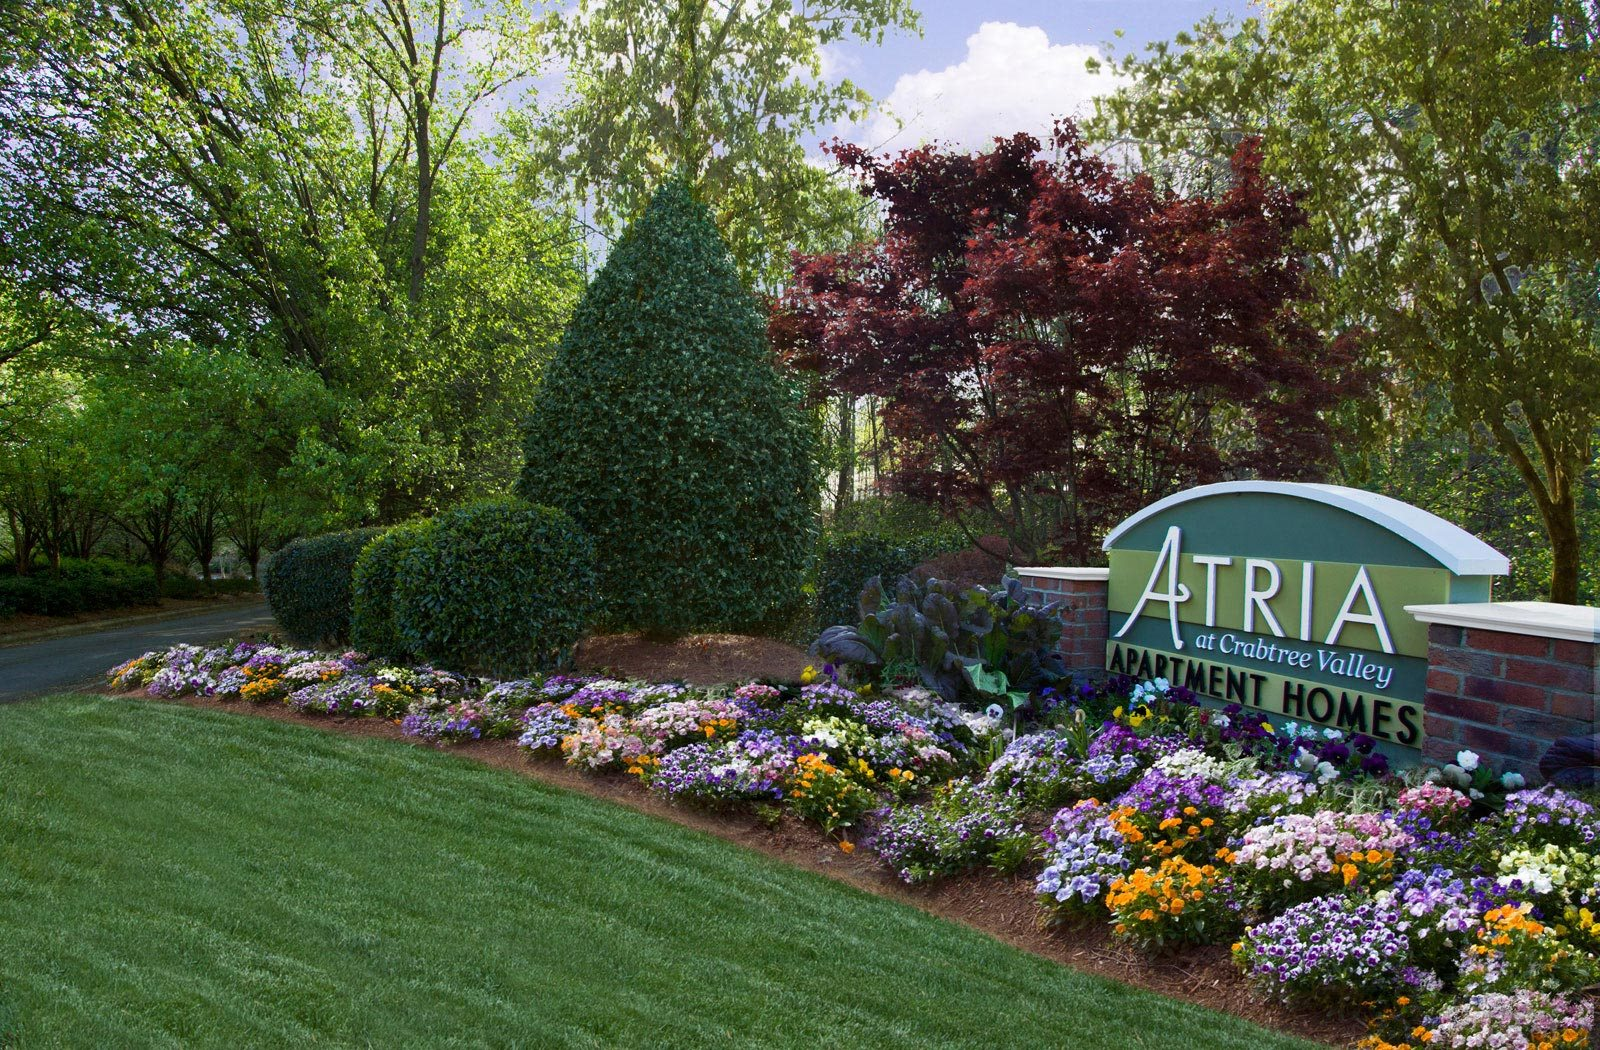 atria at crabtree valley logo | Atria at Crabtree Valley Apartments in Raleigh, NC